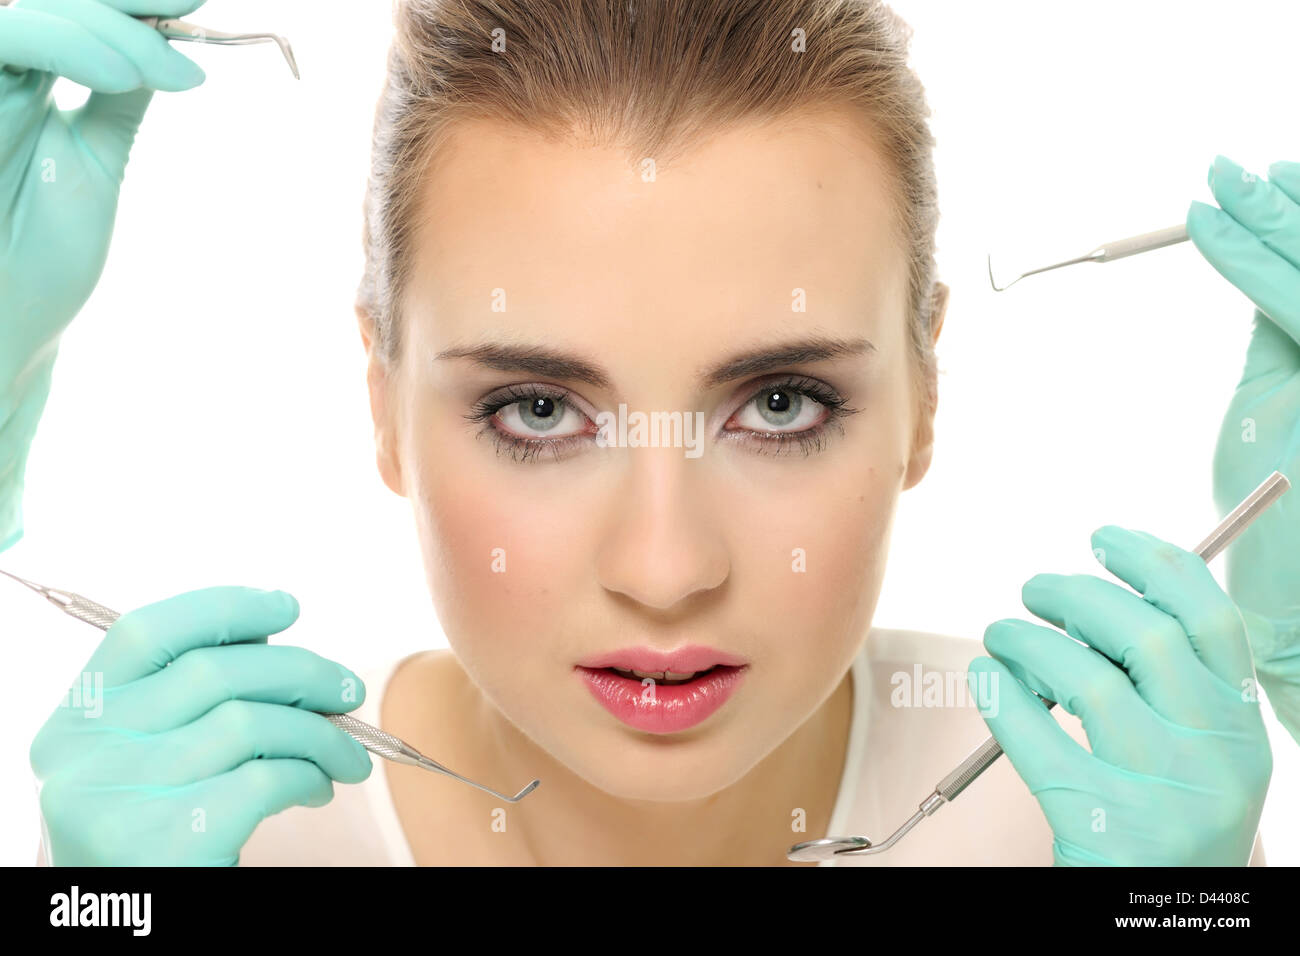 attractive, esthetic, blonde, face, girl, women, clean, skin, care, beauty, fresh, proesthetic, white, young - Stock Image